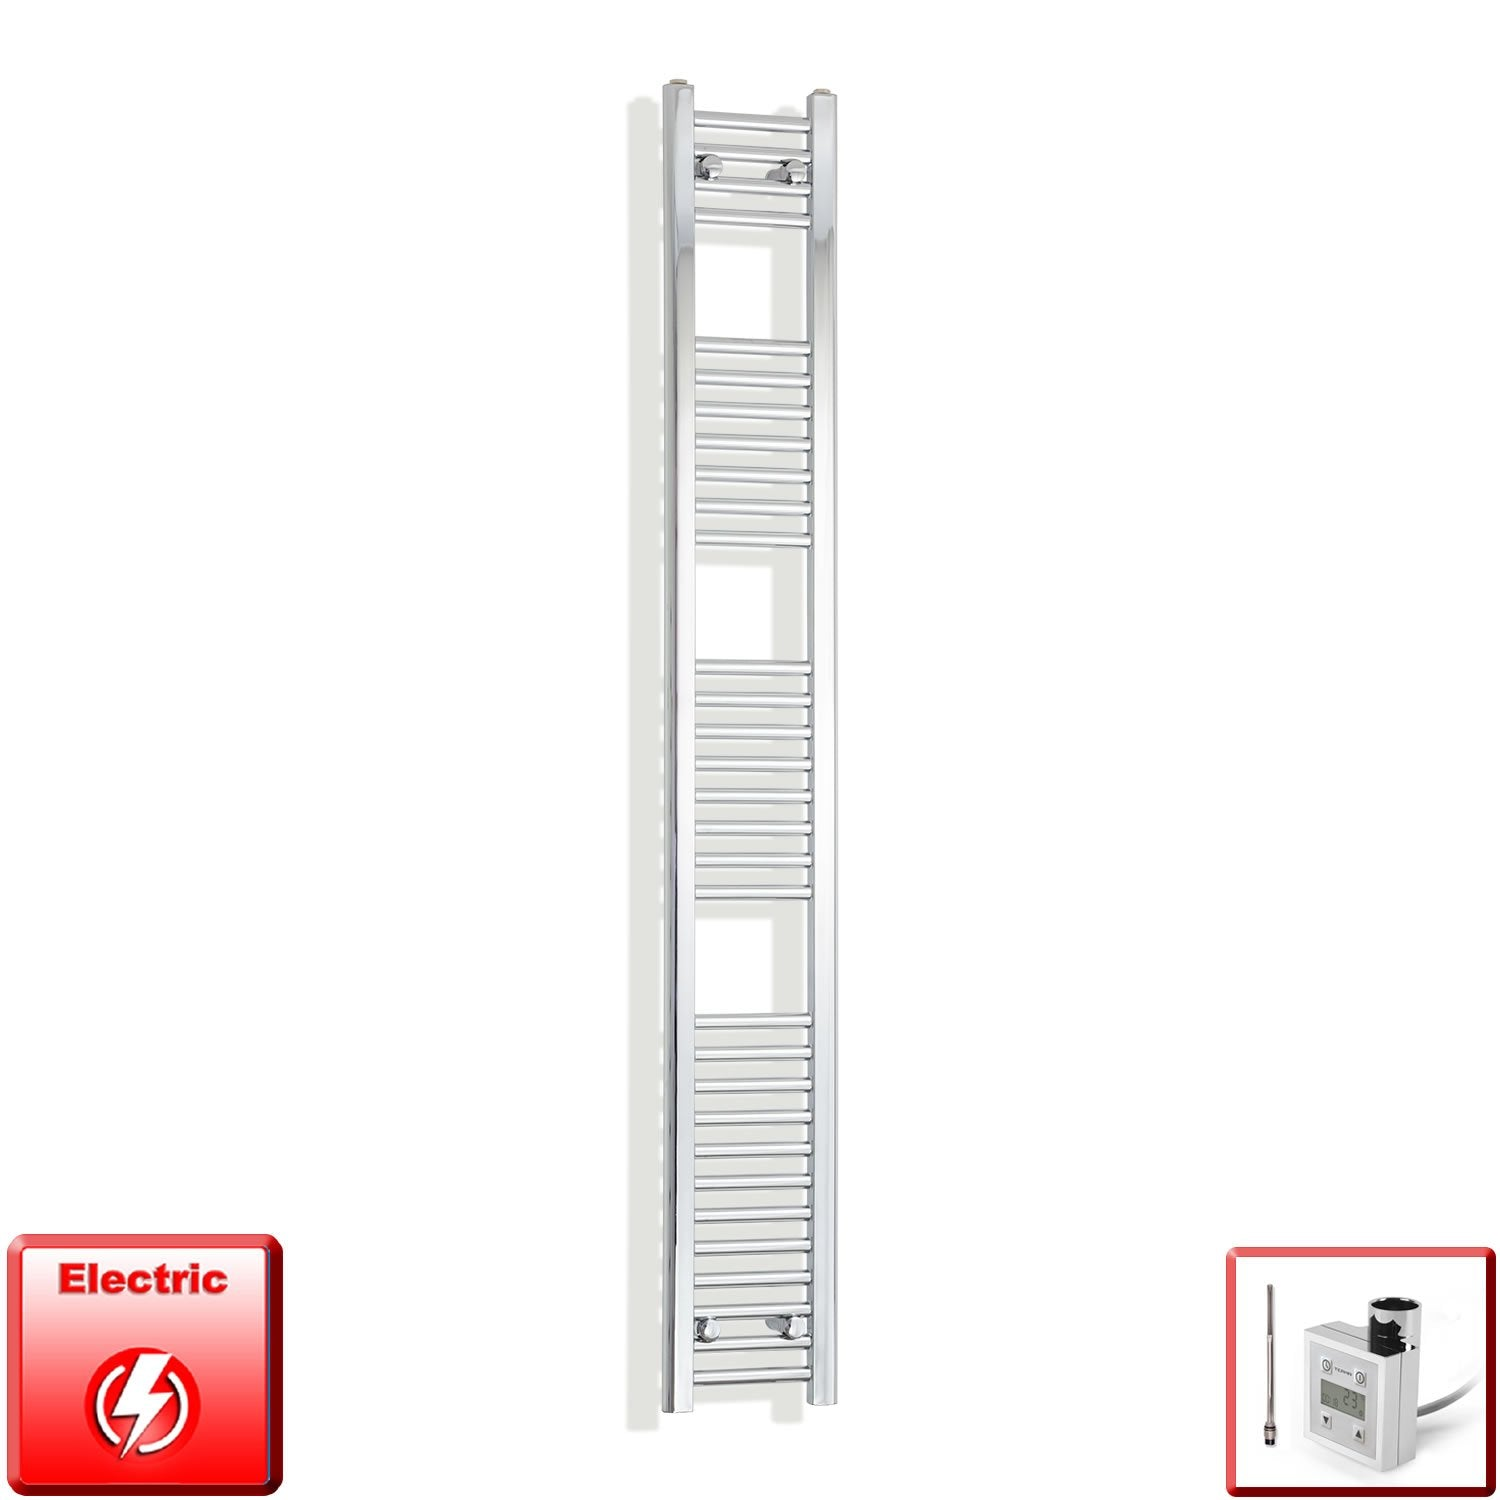 200mm Wide 1800mm High Flat Chrome Pre-Filled Electric Heated Towel Rail Radiator HTR,KTX-3 Thermostatic Element